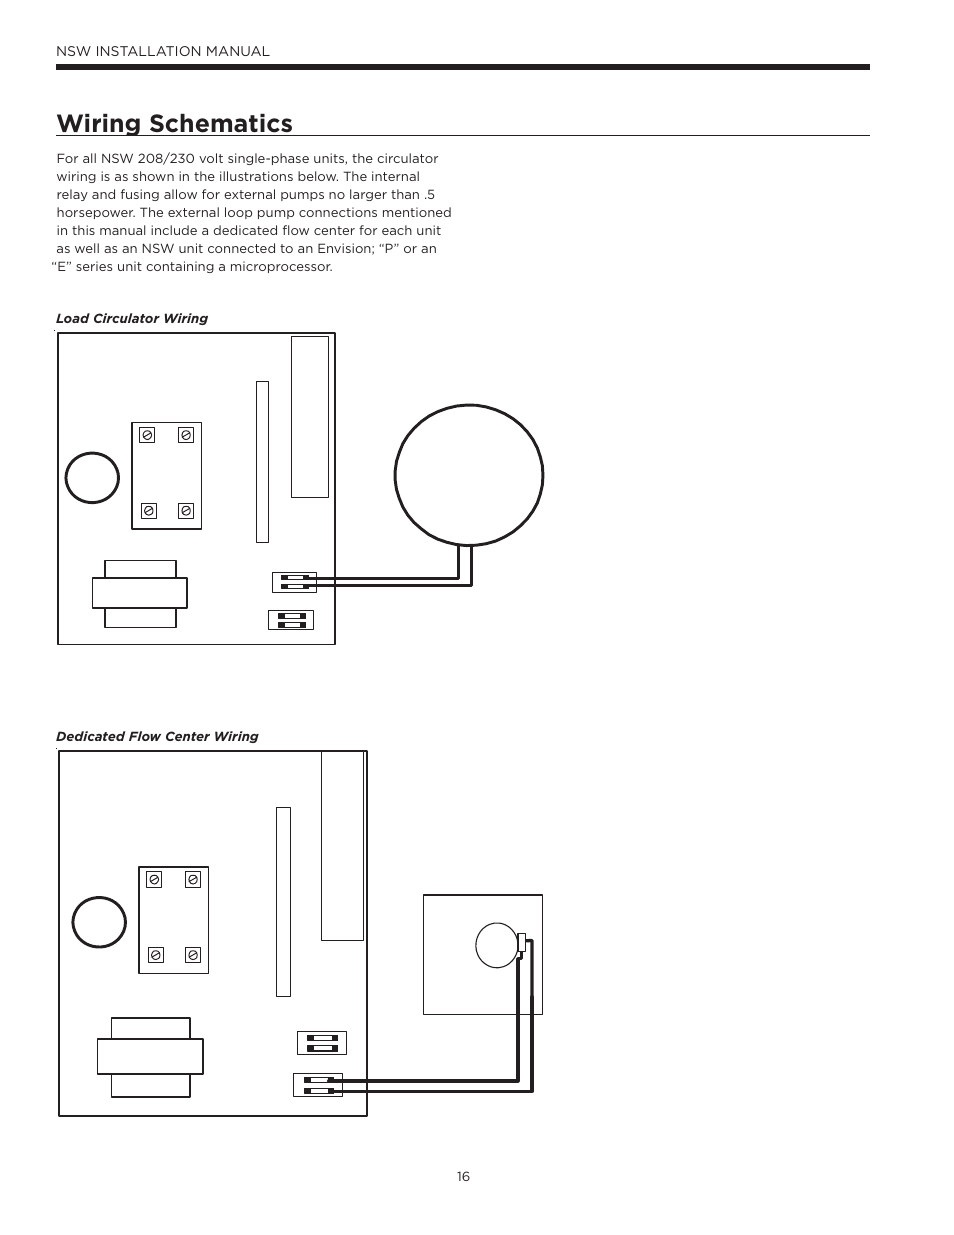 hight resolution of wiring schematics control box load circulator pump waterfurnacewaterfurnace wiring diagrams 17